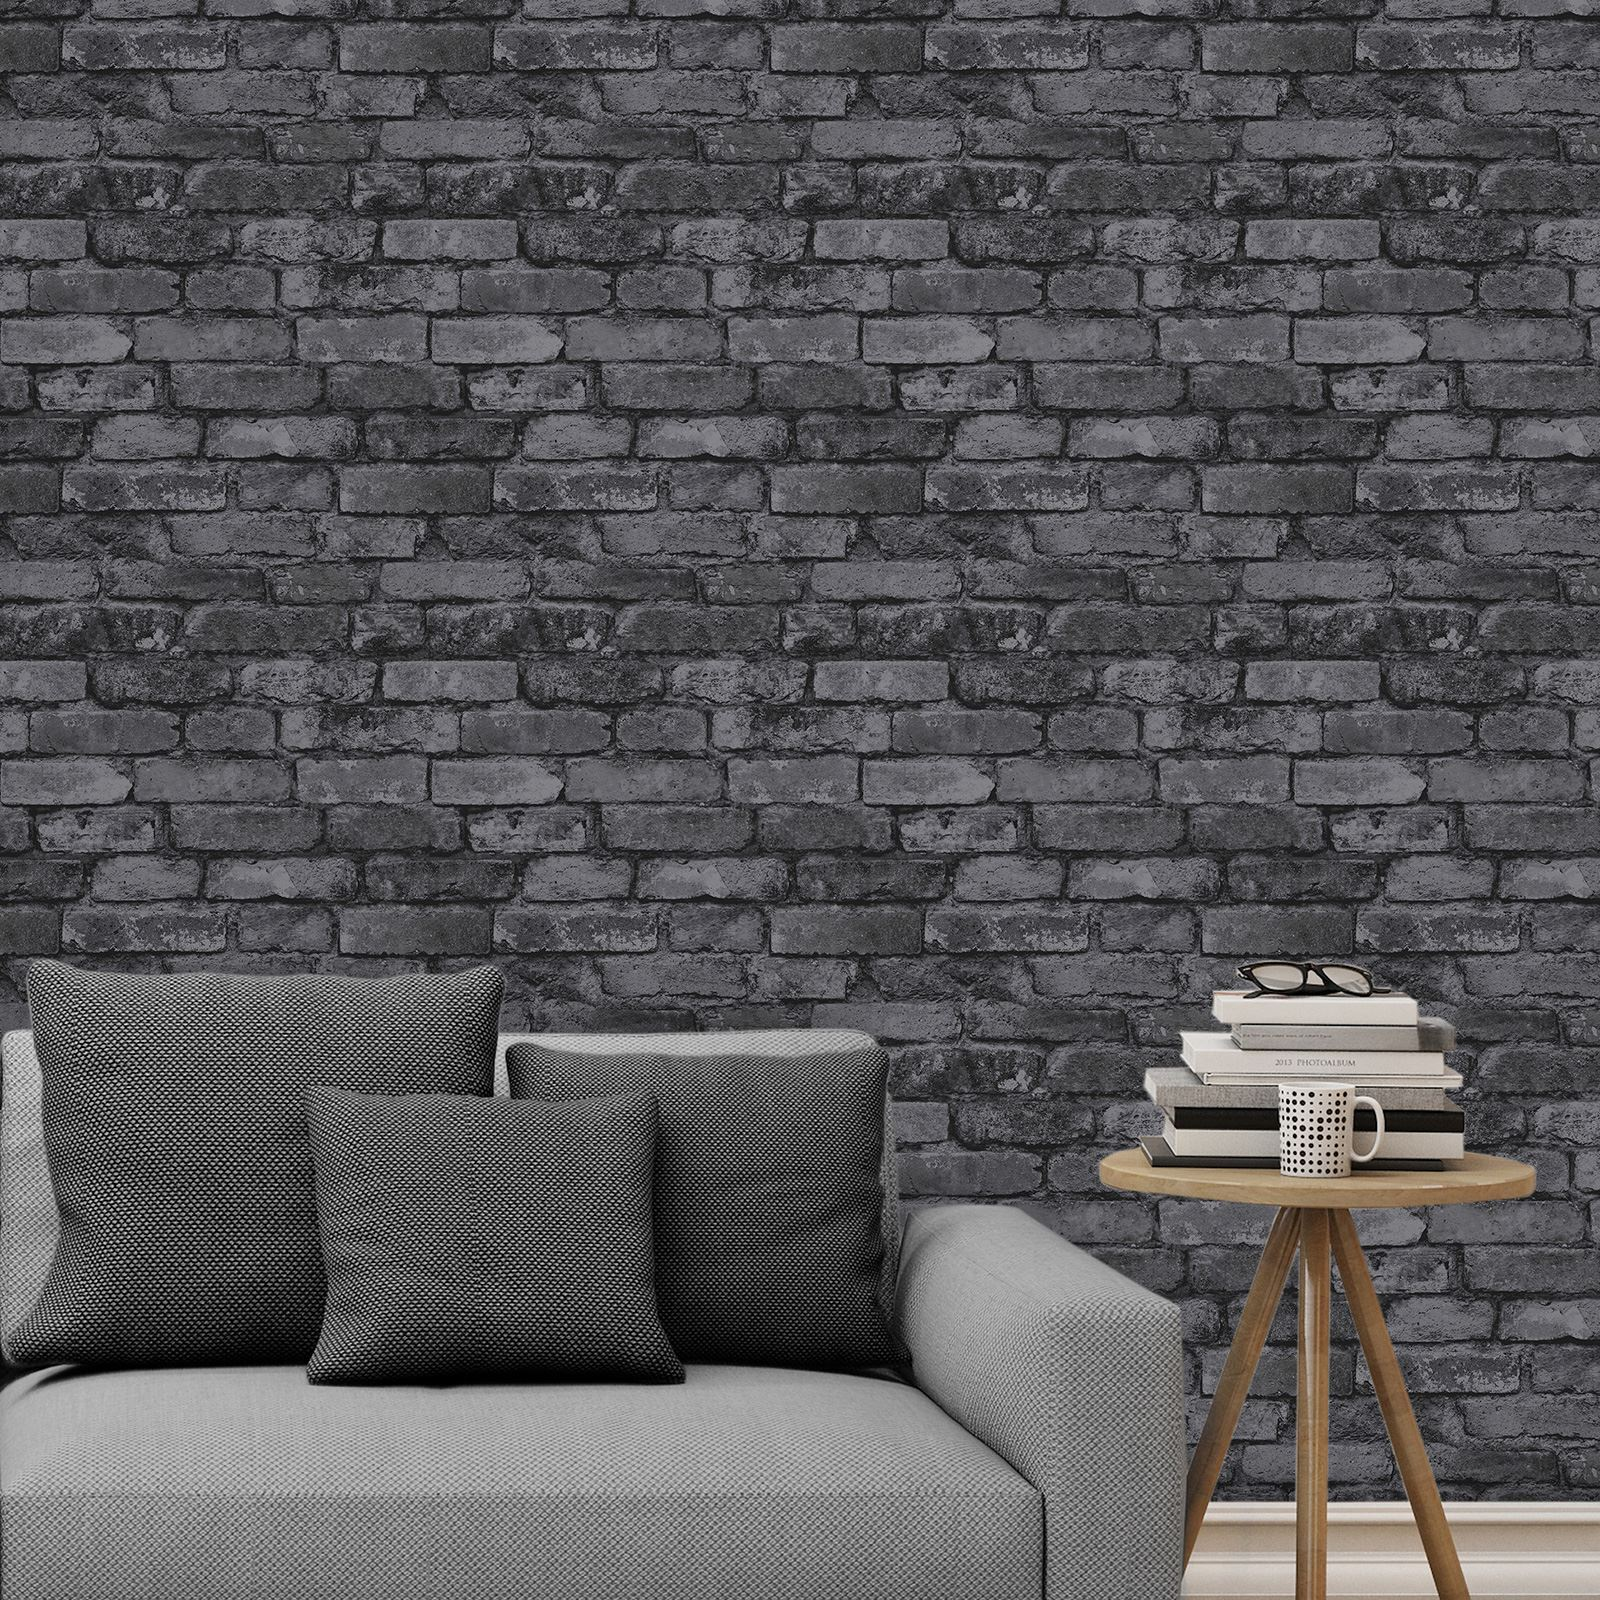 Rasch fine decor 10m luxury brick effect wallpaper stone for Grey brick wallpaper bedroom